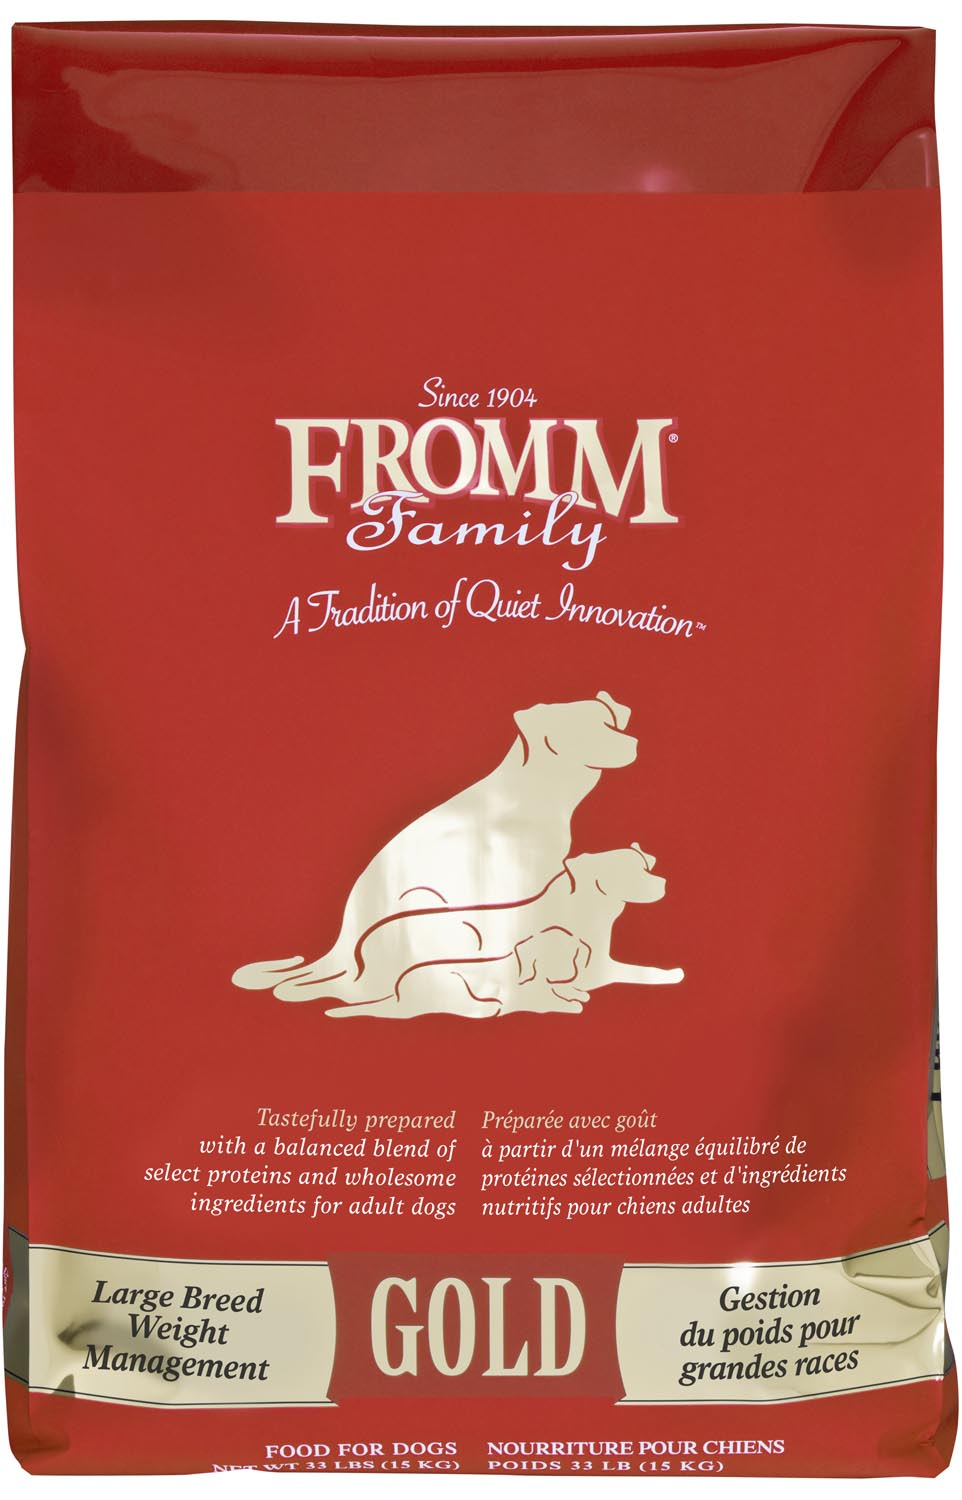 Fromm Gold Weight Management Large Breed Dry Dog Food Image